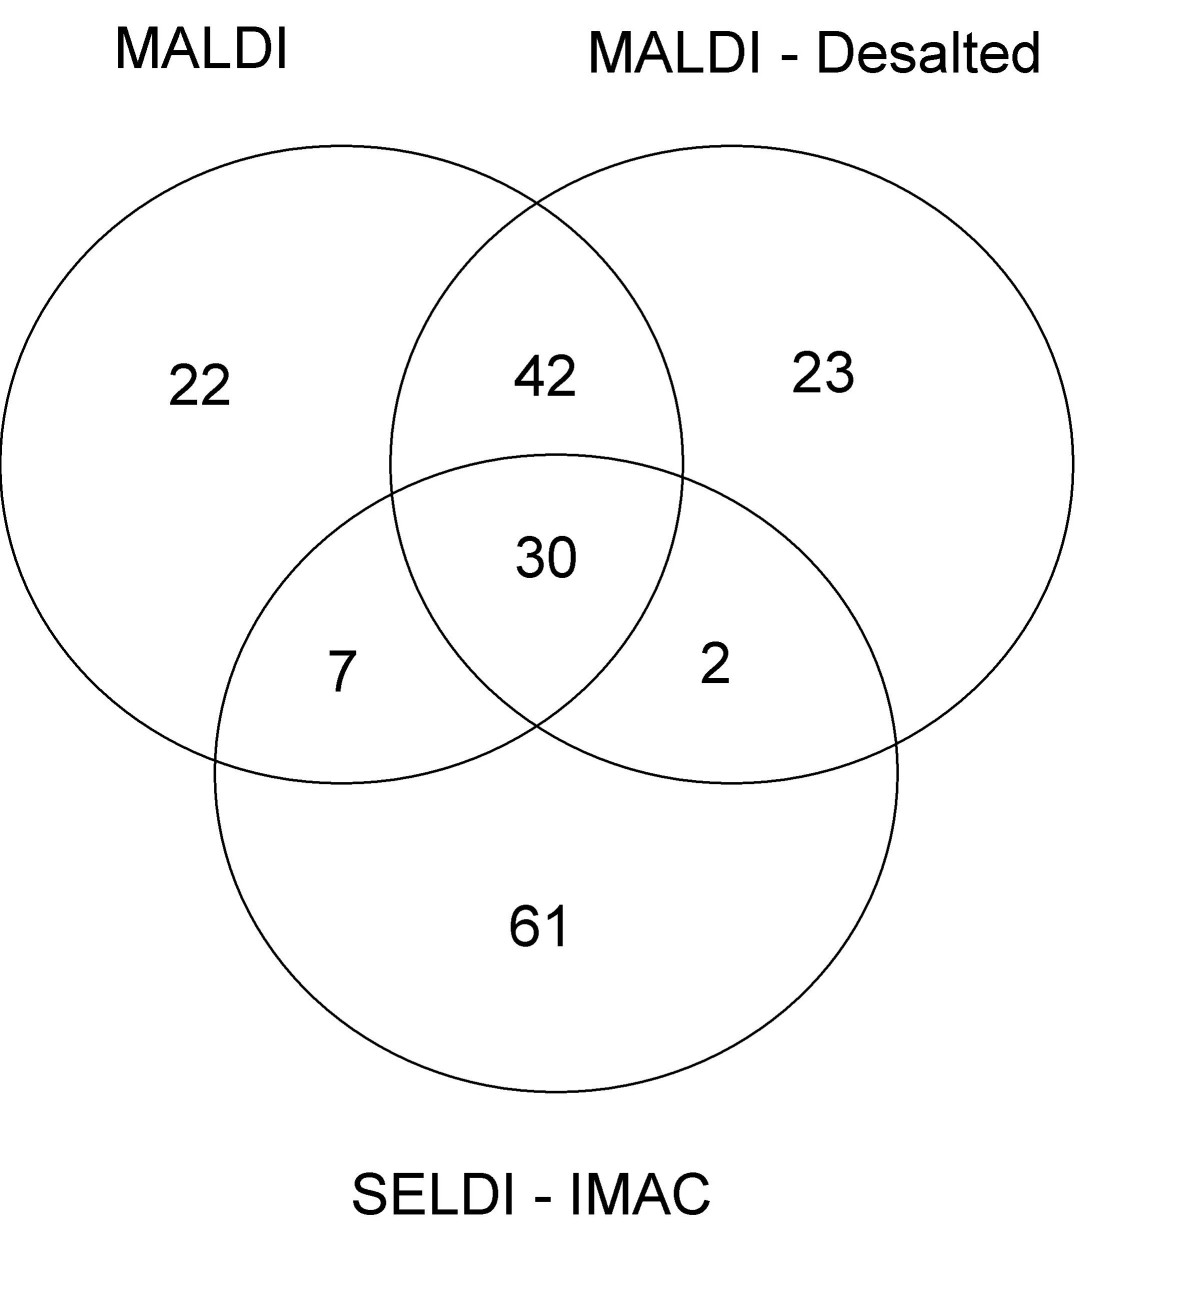 http://static-content.springer.com/image/art%3A10.1186%2F1477-5956-6-19/MediaObjects/12953_2008_Article_87_Fig3_HTML.jpg